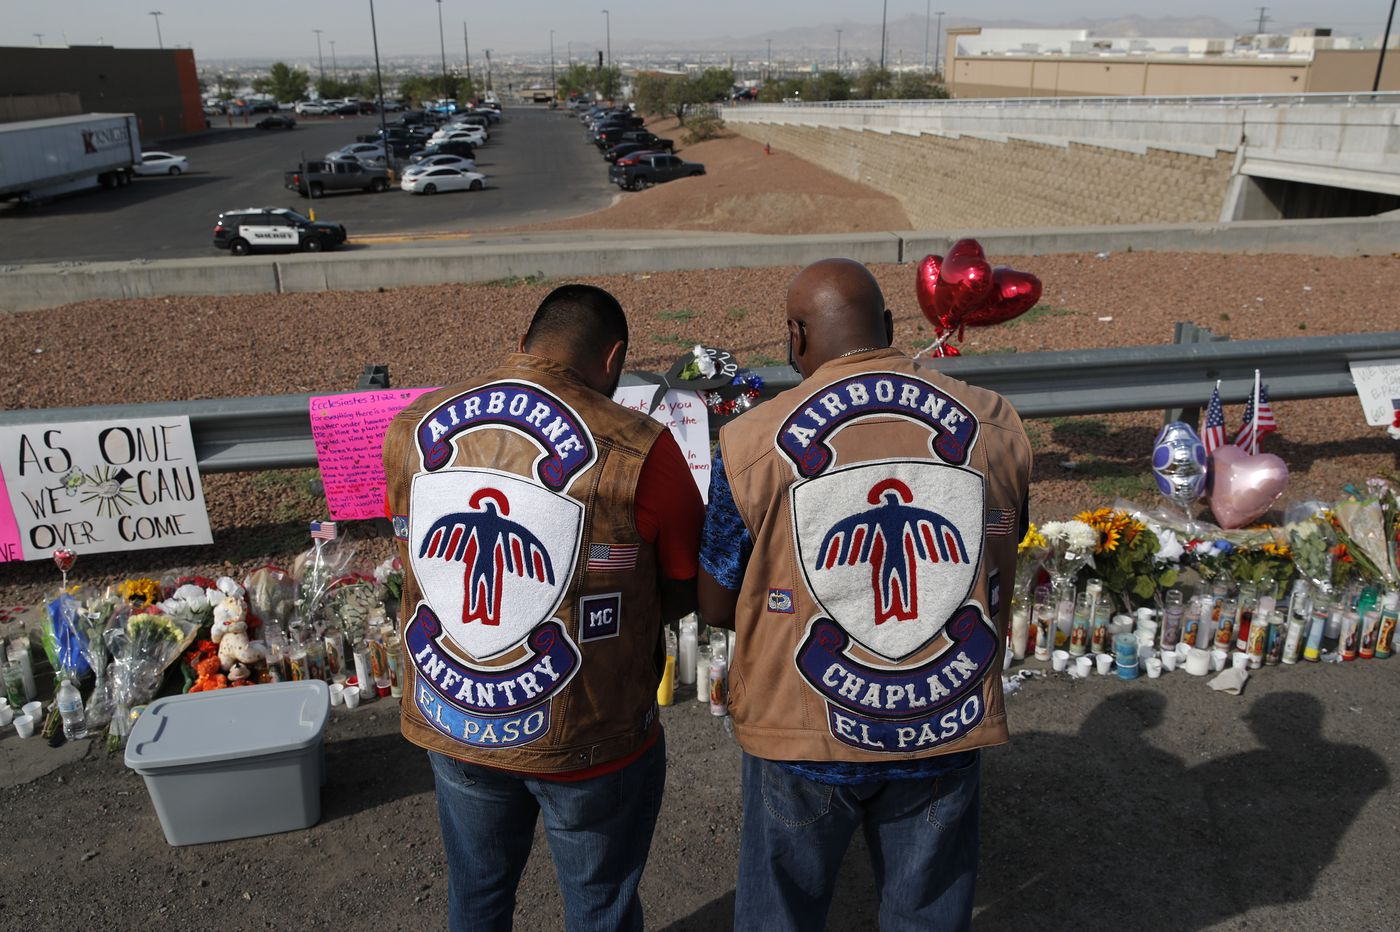 Trump plans visits to El Paso and Dayton after mass shootings